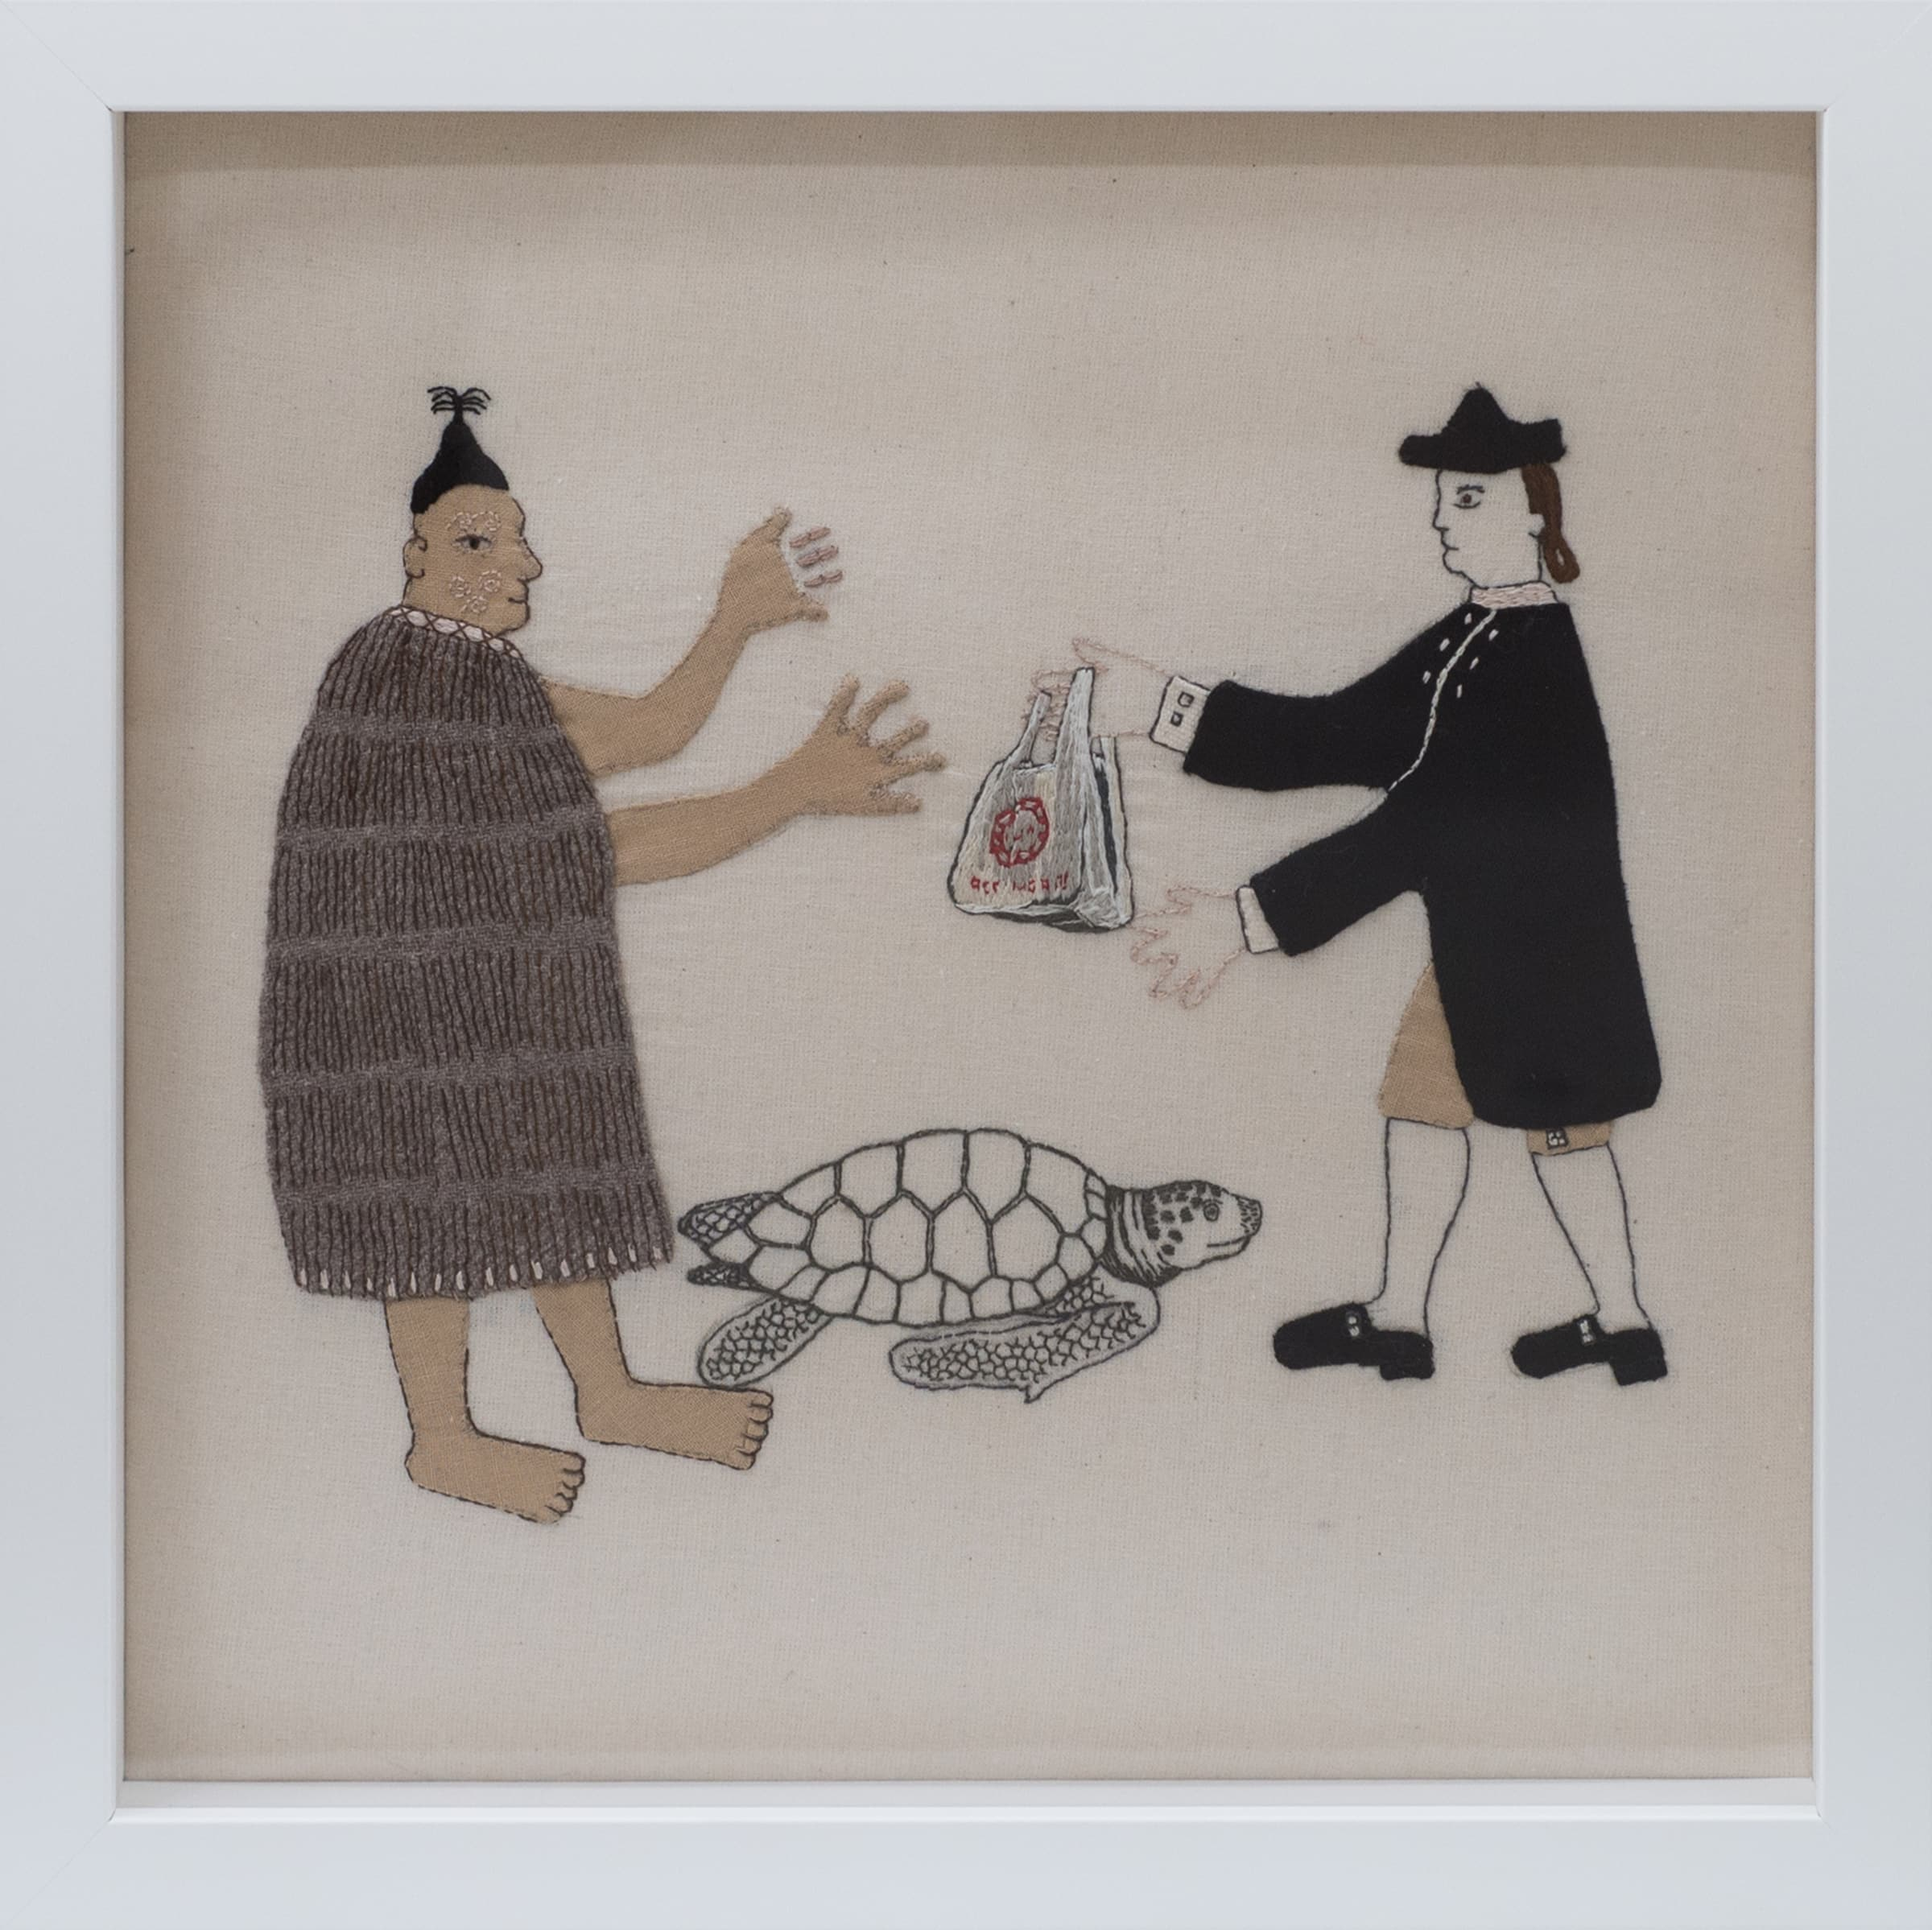 "<span class=""link fancybox-details-link""><a href=""/artists/48-sarah-munro/works/7274-sarah-munro-trade-items-one-use-plastic-bag-sea-turtle-2018/"">View Detail Page</a></span><div class=""artist""><strong>Sarah Munro</strong></div> <div class=""title""><em>Trade Items: One-use plastic bag, Sea Turtle</em>, 2018</div> <div class=""signed_and_dated"">Signed & Dated</div> <div class=""medium"">Unbleached calico, cloth, thread</div> <div class=""dimensions"">30 x 30 cm<br /> 11 3/4 x 11 3/4 in</div><div class=""copyright_line"">Copyright The Artist</div>"